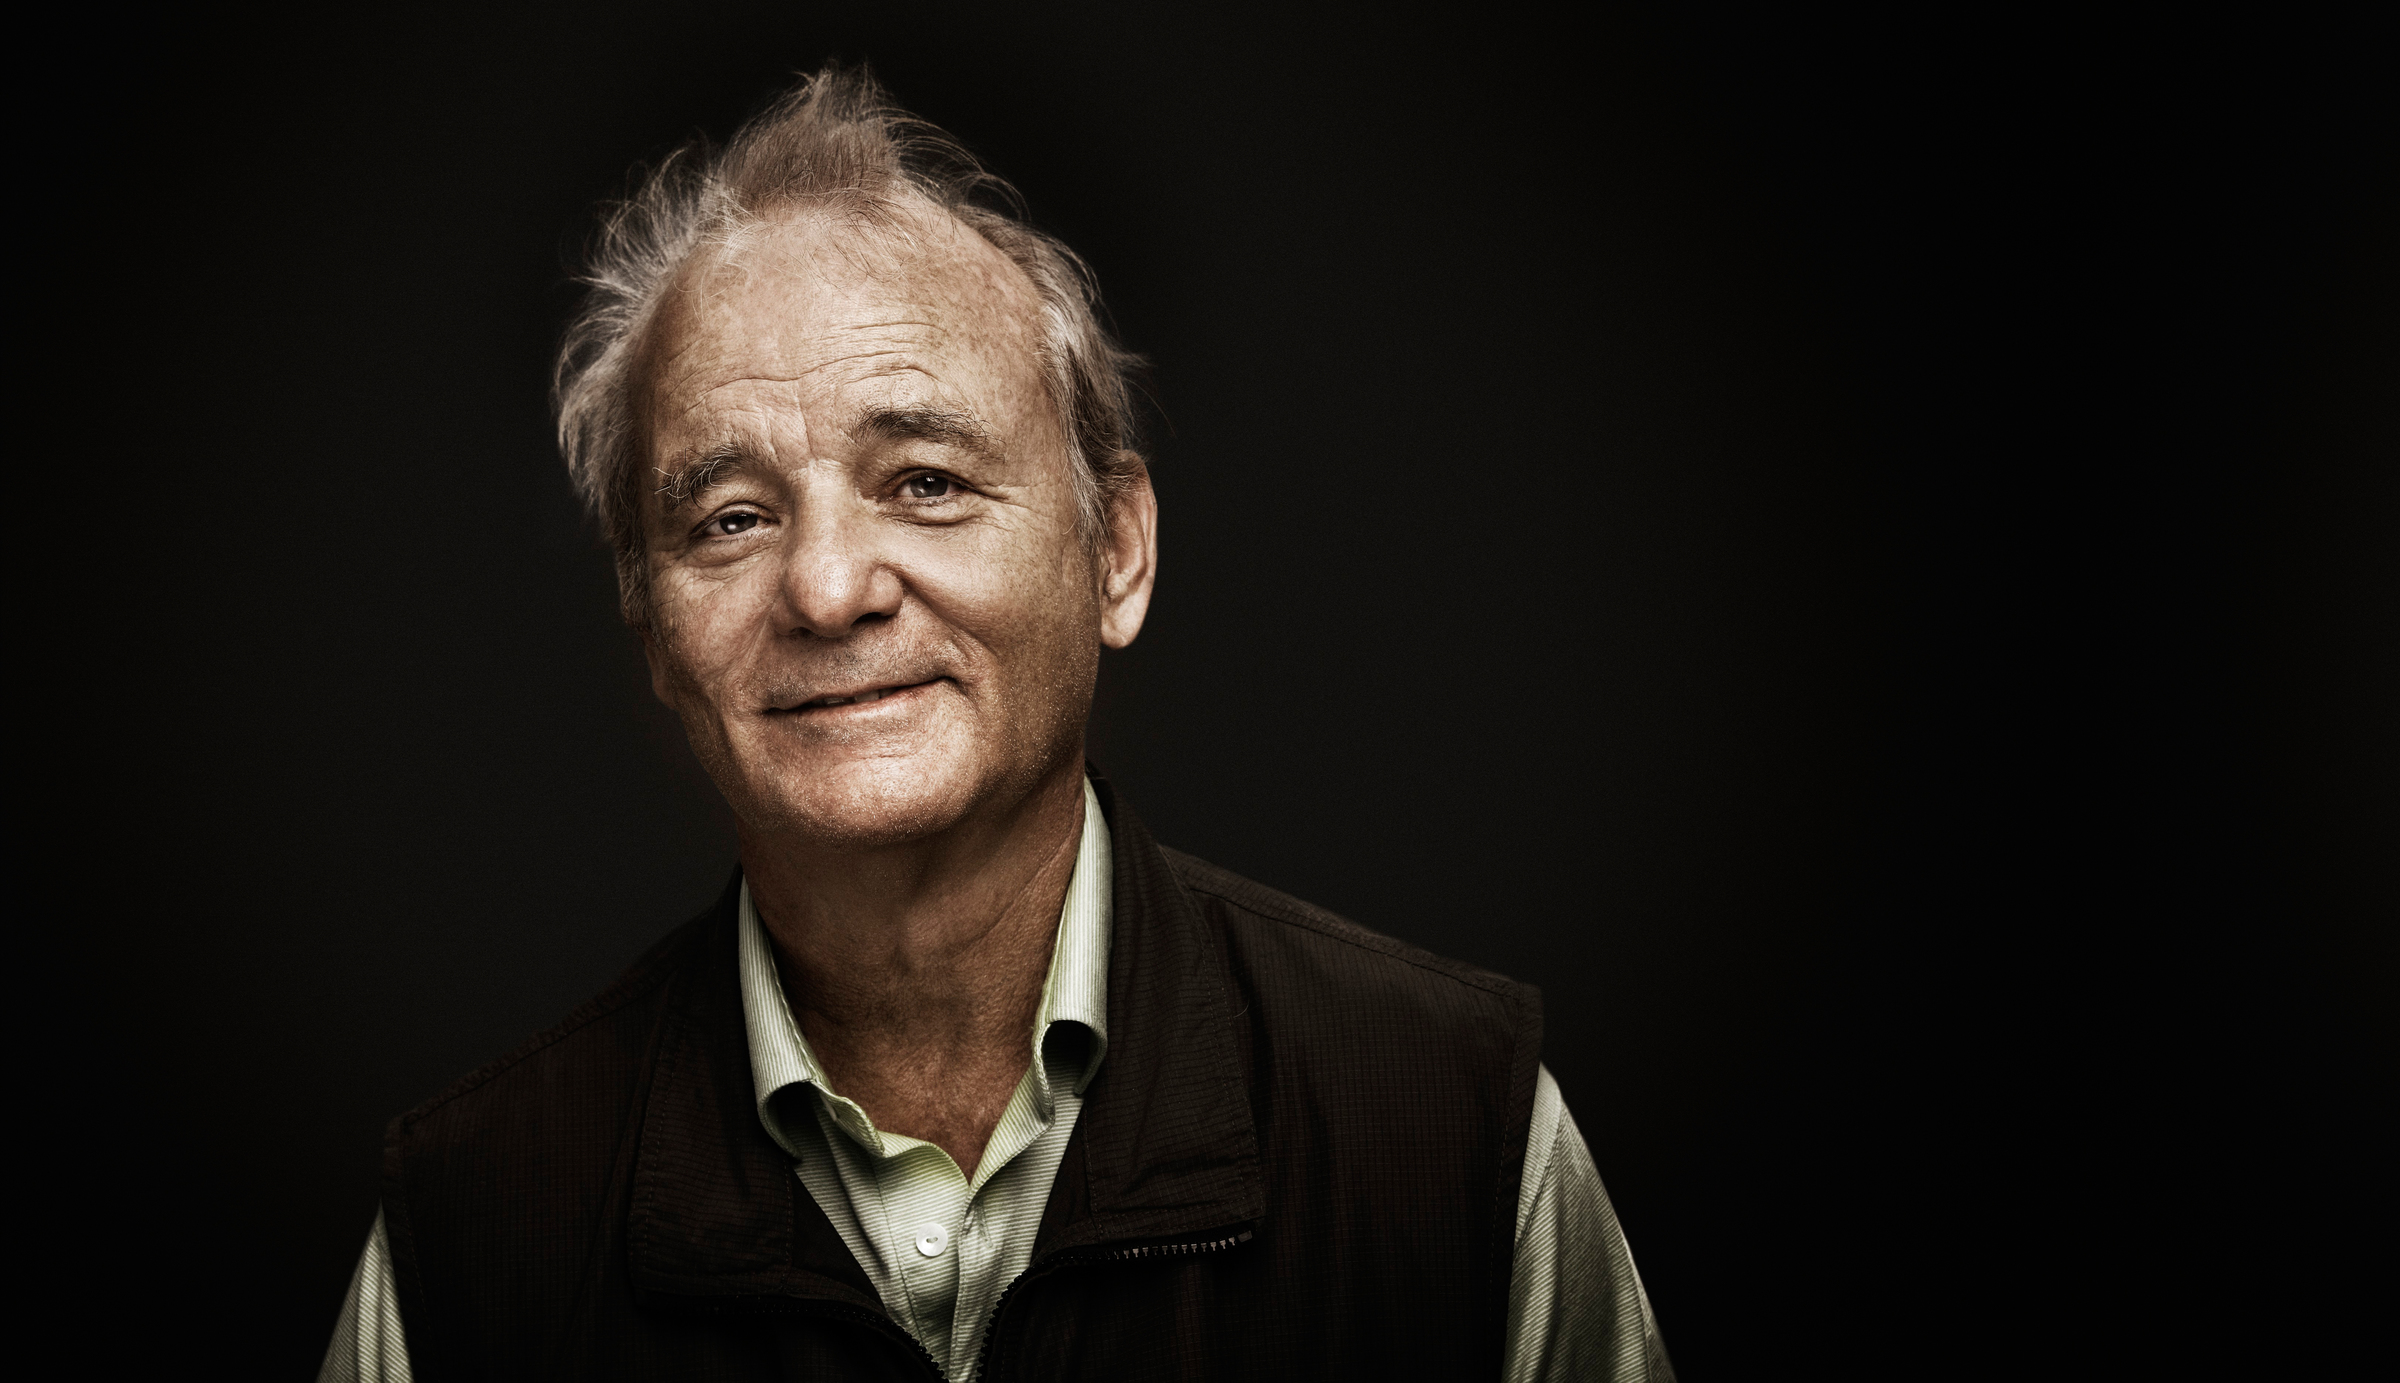 bill murray hd wallpaper - photo #4